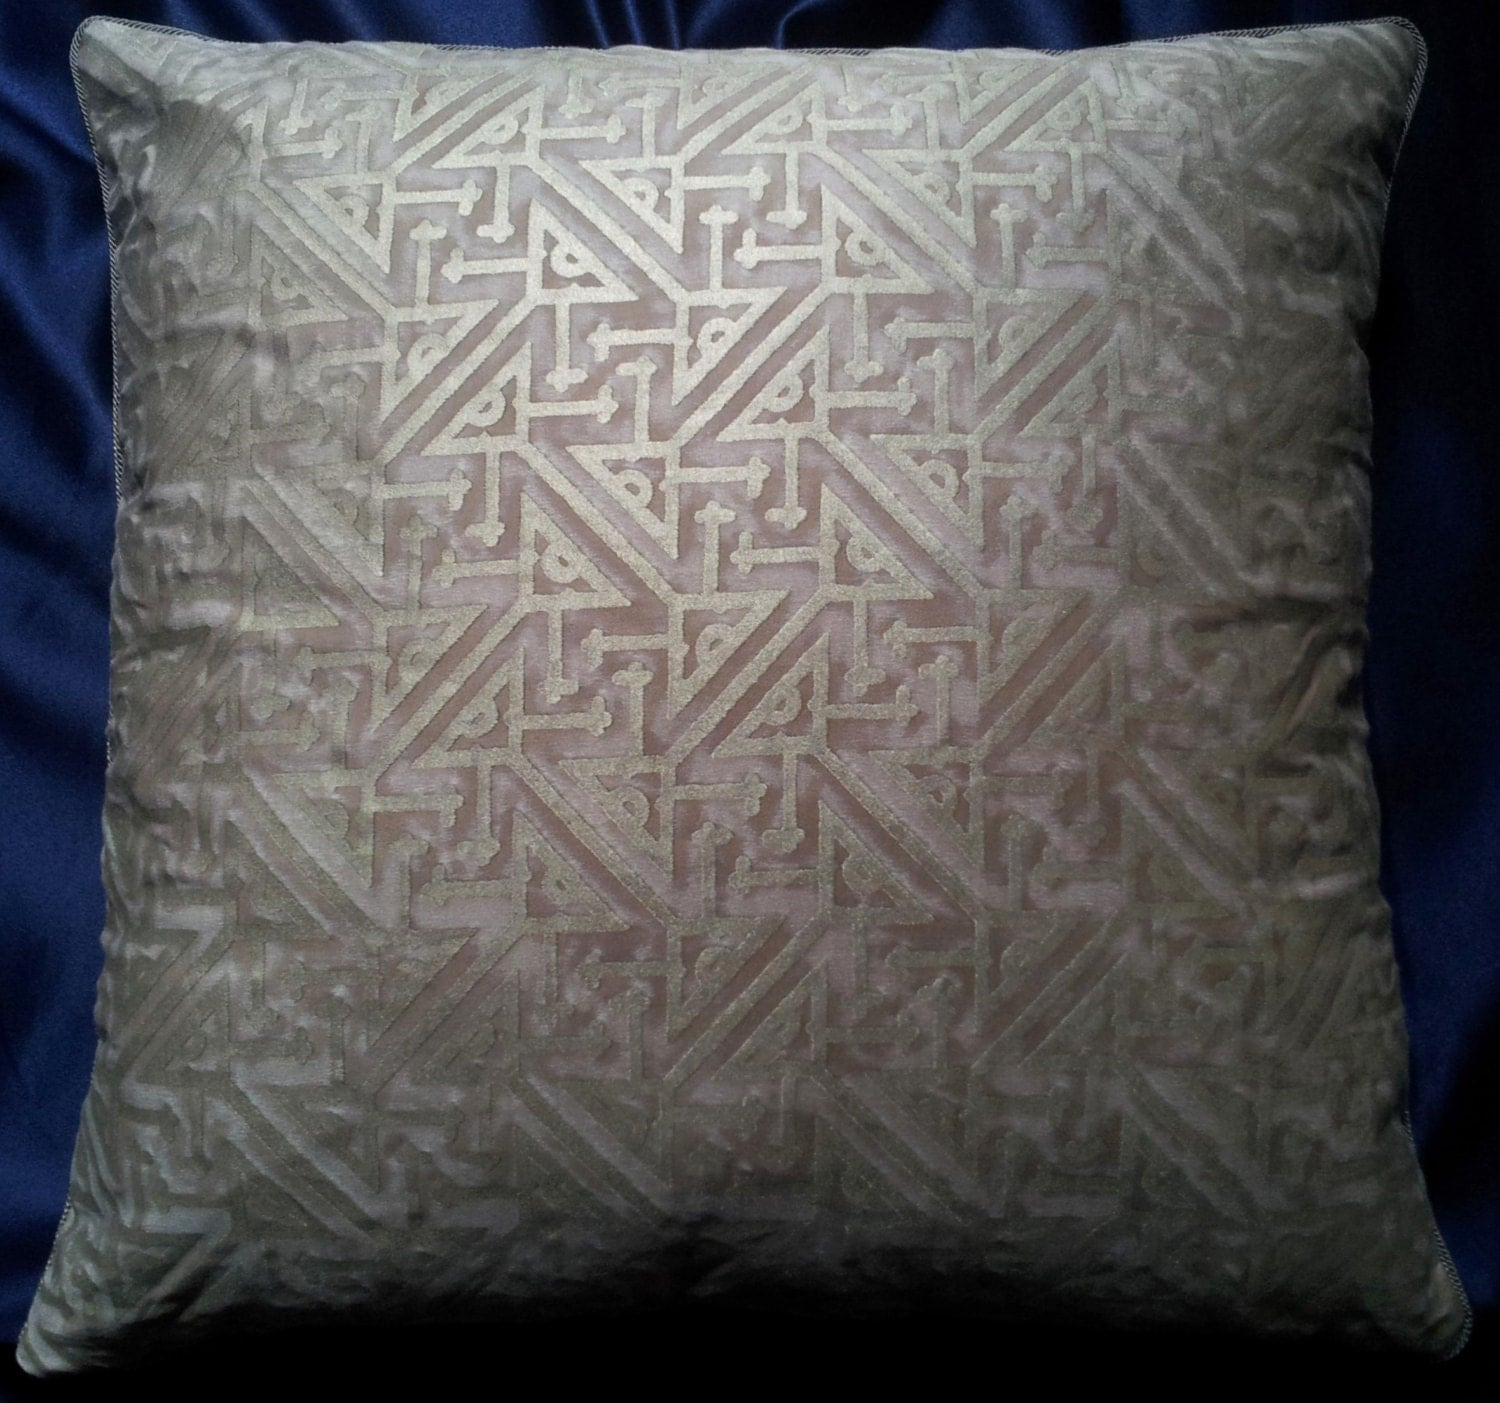 Throw Pillow Cover Fabric : Fortuny Fabric Throw Pillow Cushion Cover Platinum & Silvery